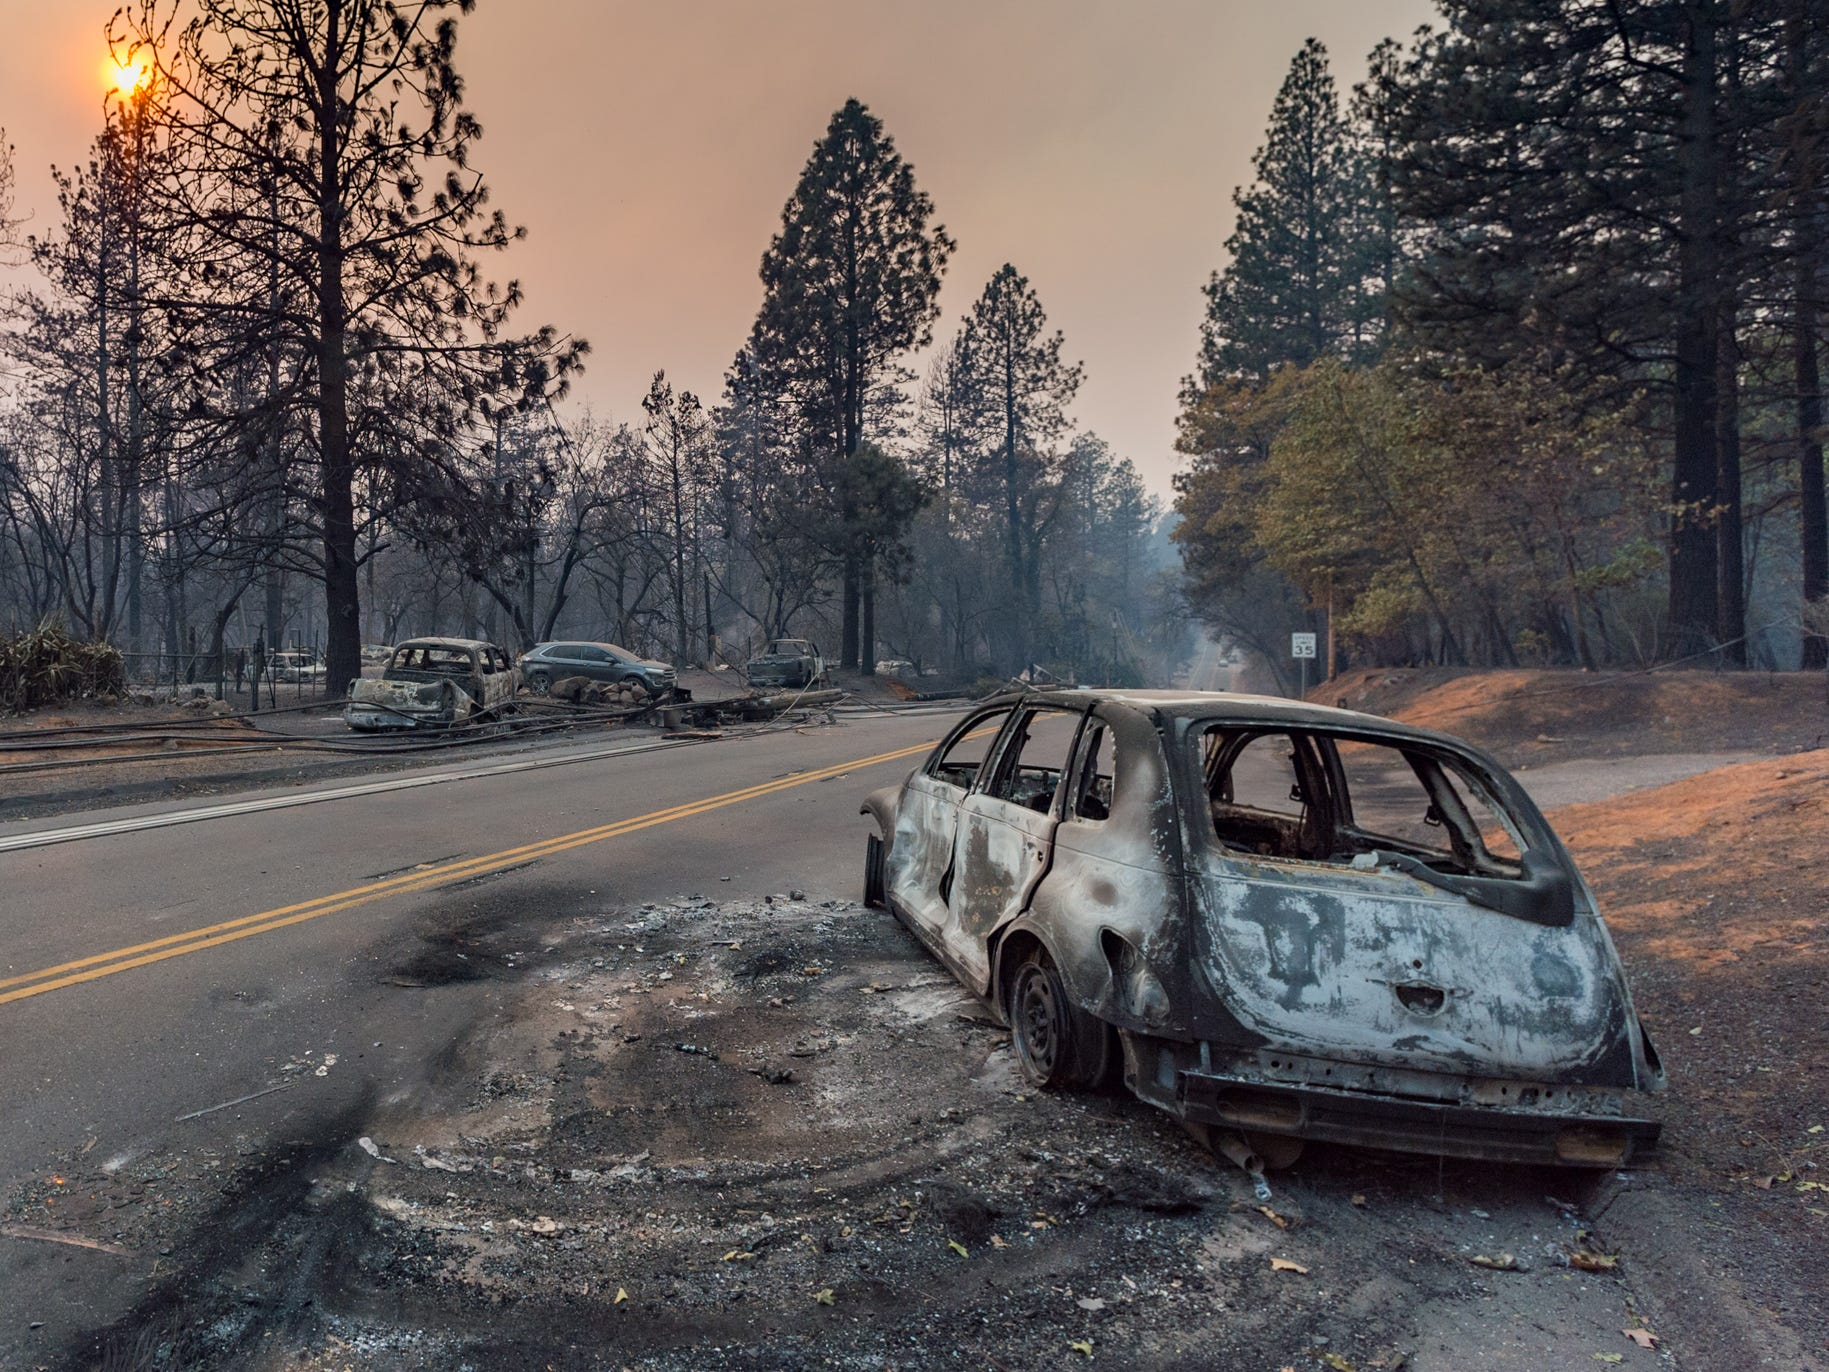 The Camp Fire swept through Paradise, California, destroying more than 6,500 structures.